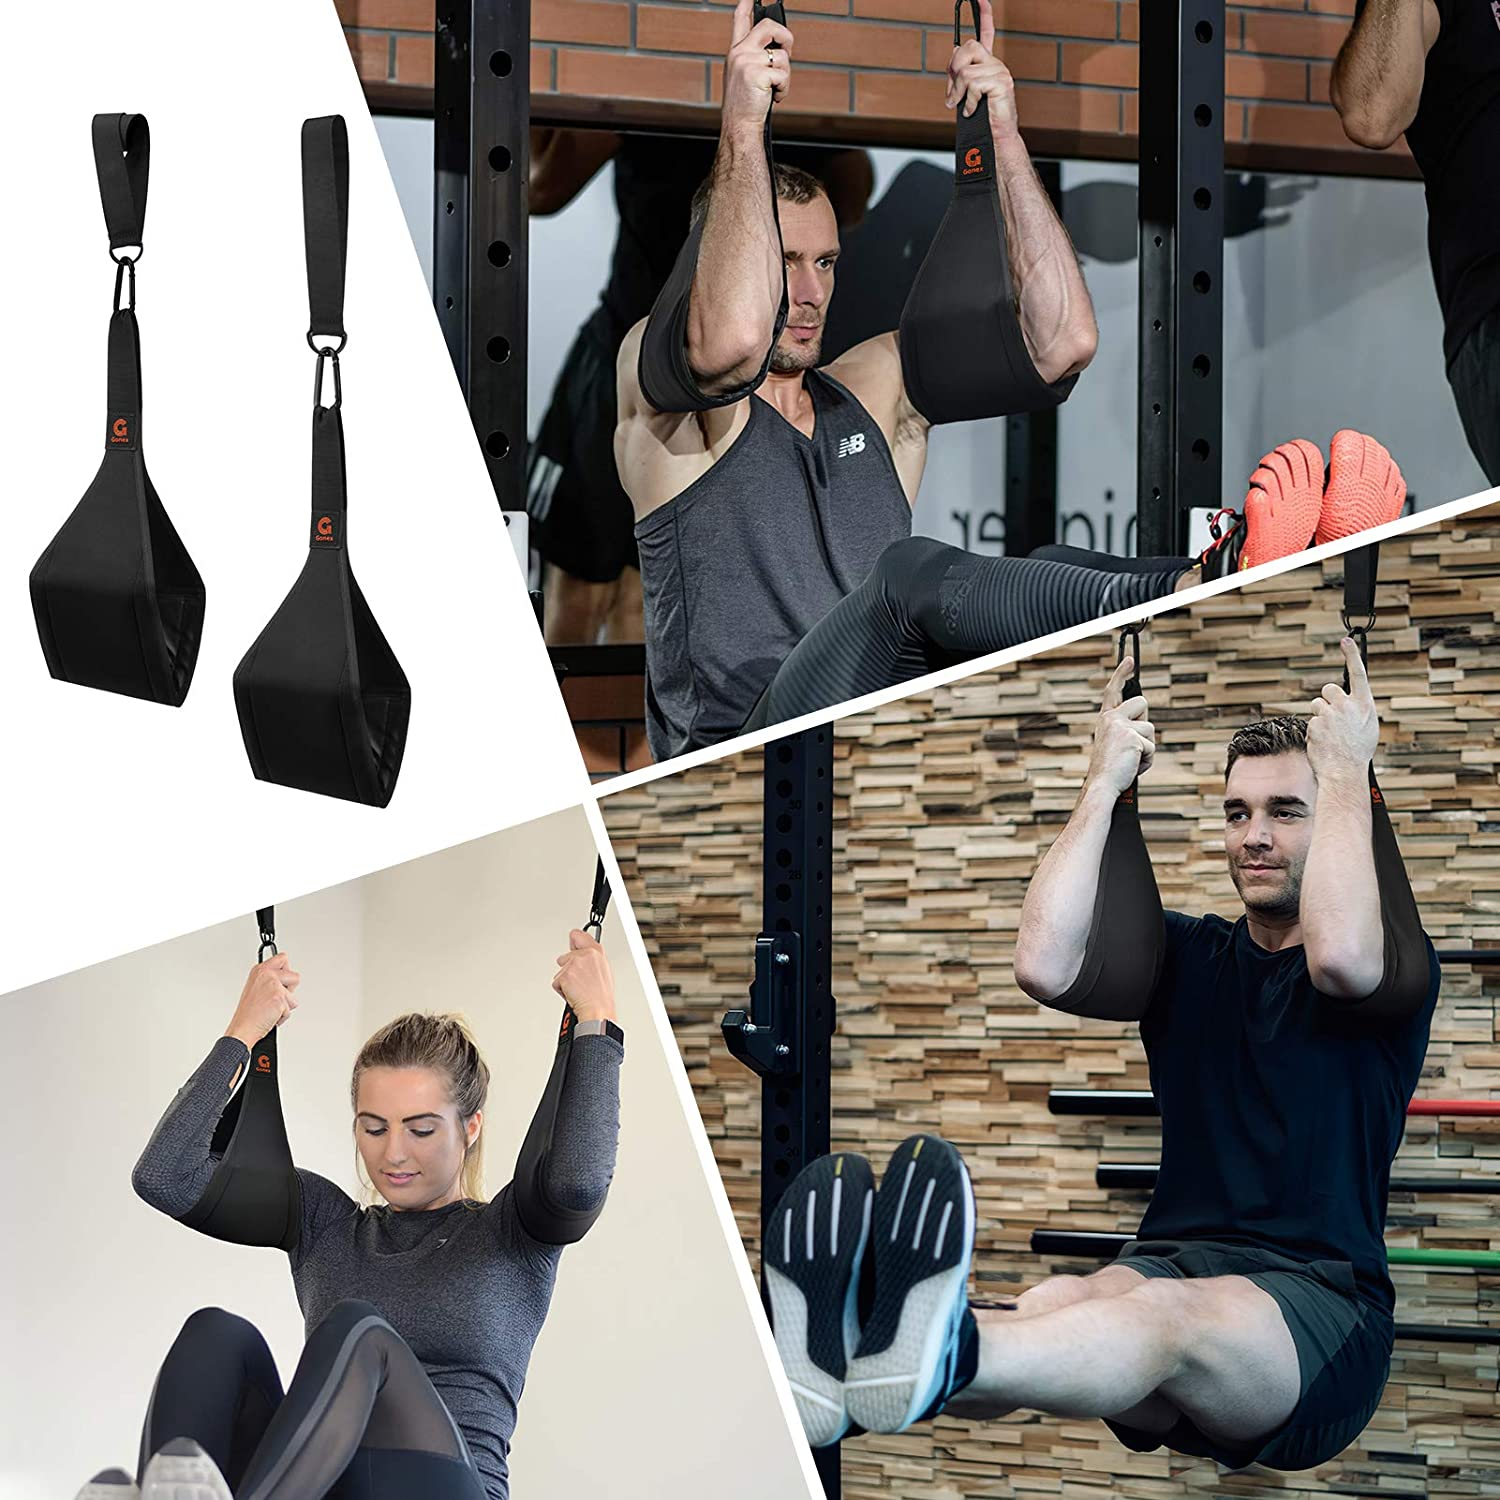 Gonex Adjustable Arm Hanging Ab Straps for Pull Up Bar Abdominal Muscle Building Core Strength Training Leg Raise Strap Home Gym Fitness Workout for Men /& Women